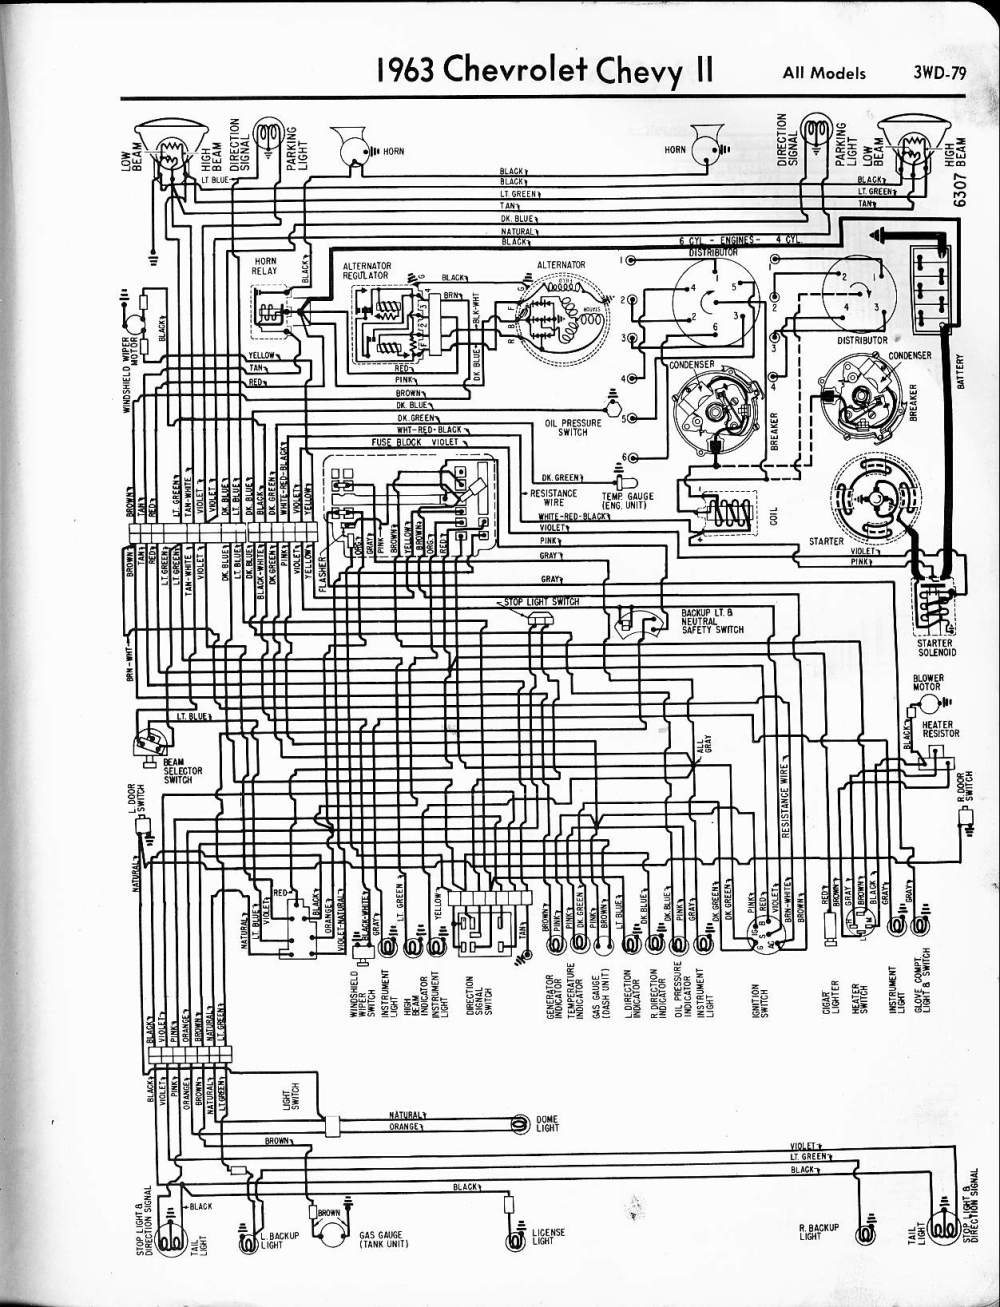 medium resolution of 57 65 chevy wiring diagrams 2009 chevrolet impala wiring diagram 1963 chevy ii all models